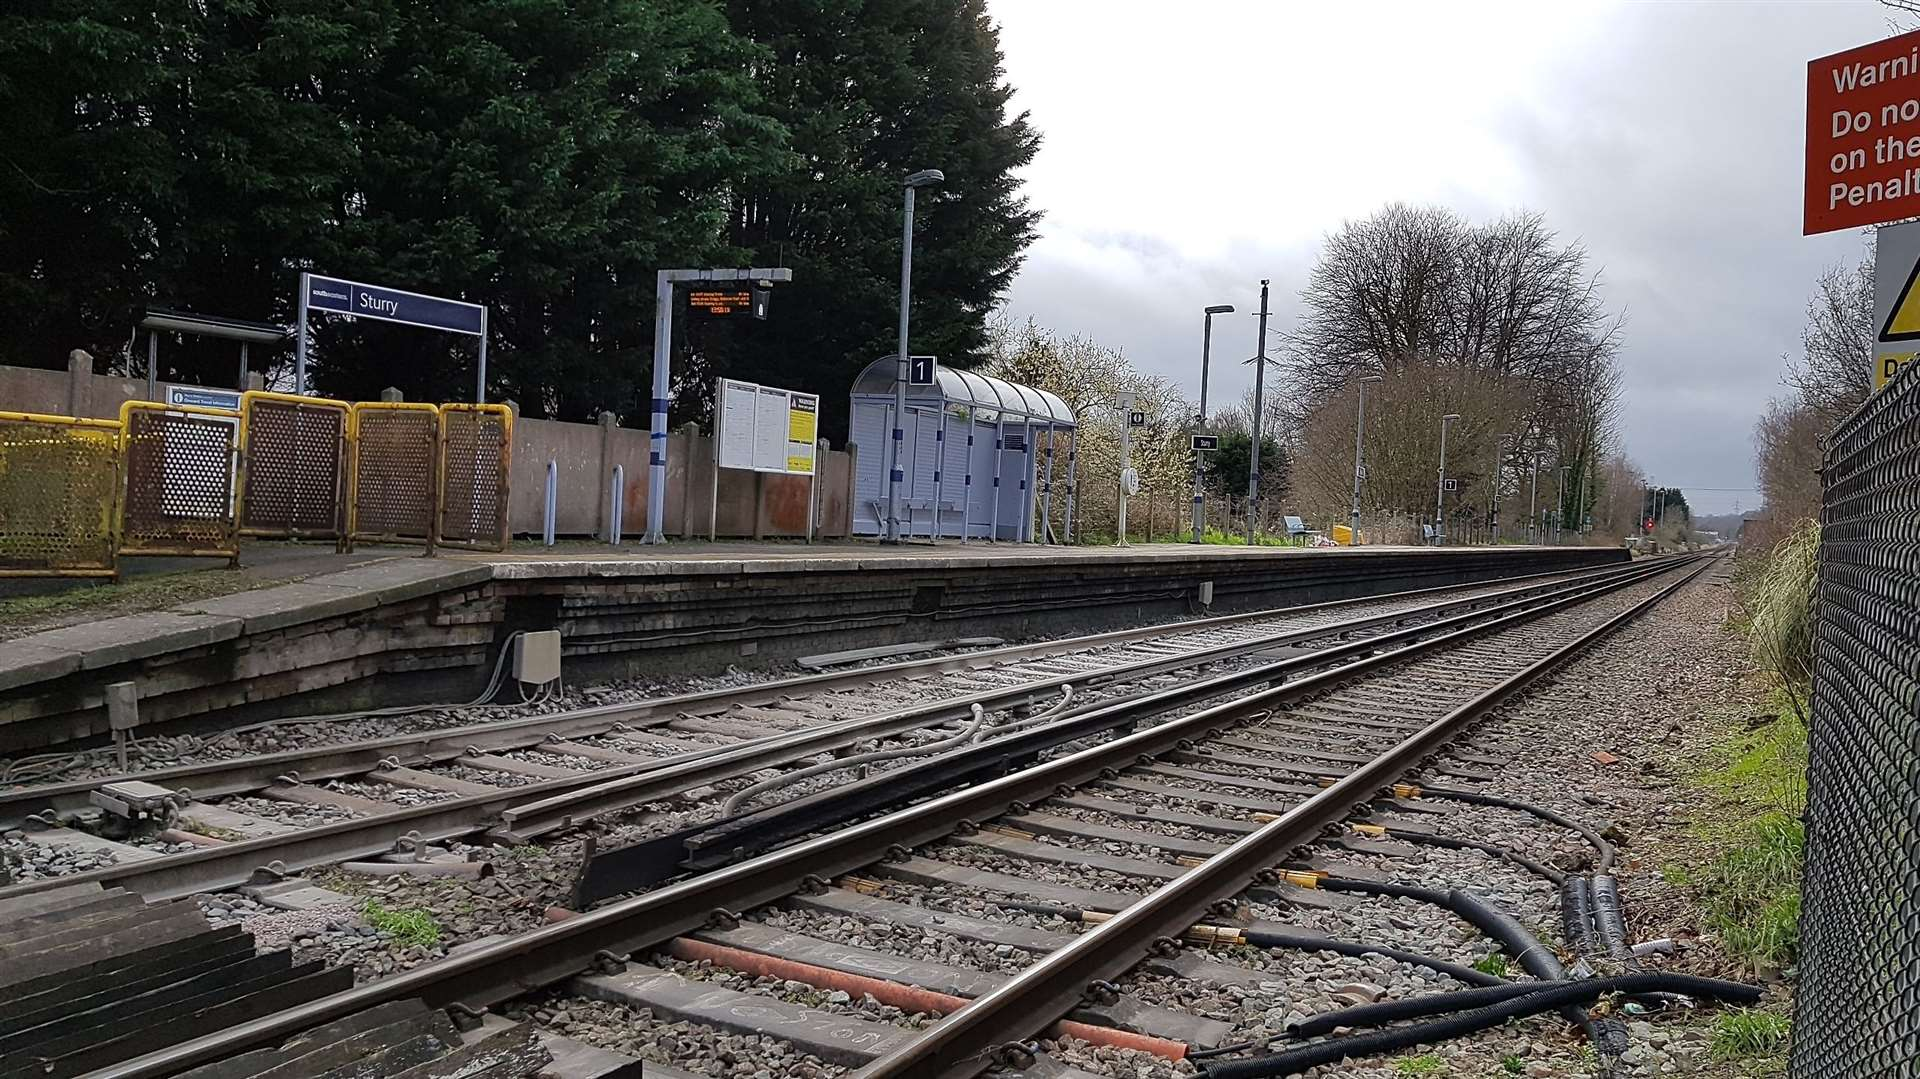 Trains were diverted after a trespasser was found on the line near Sturry railway station